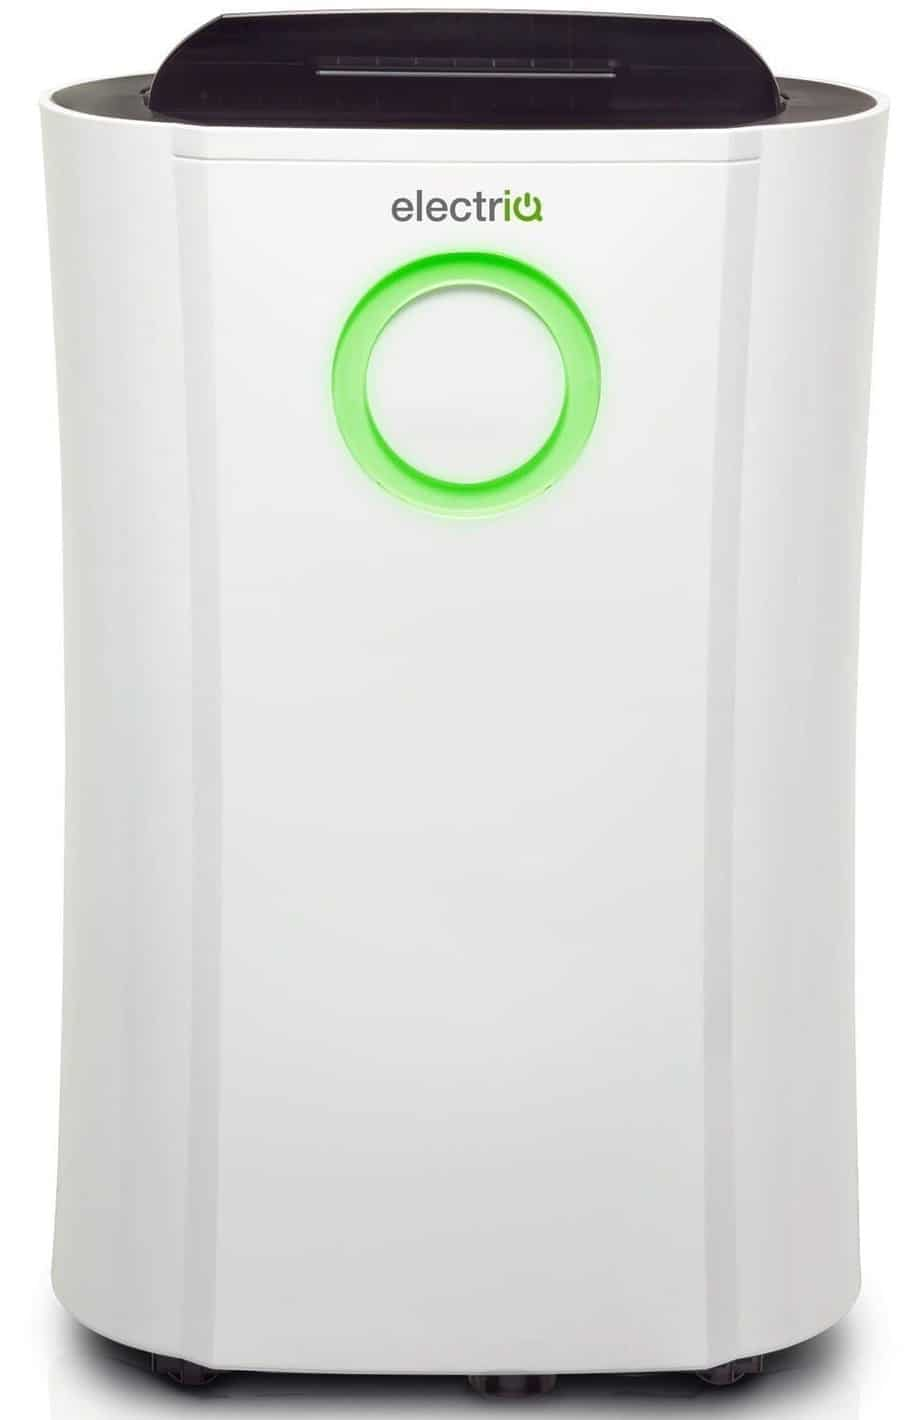 ElectriQ Portable Dehumidifier